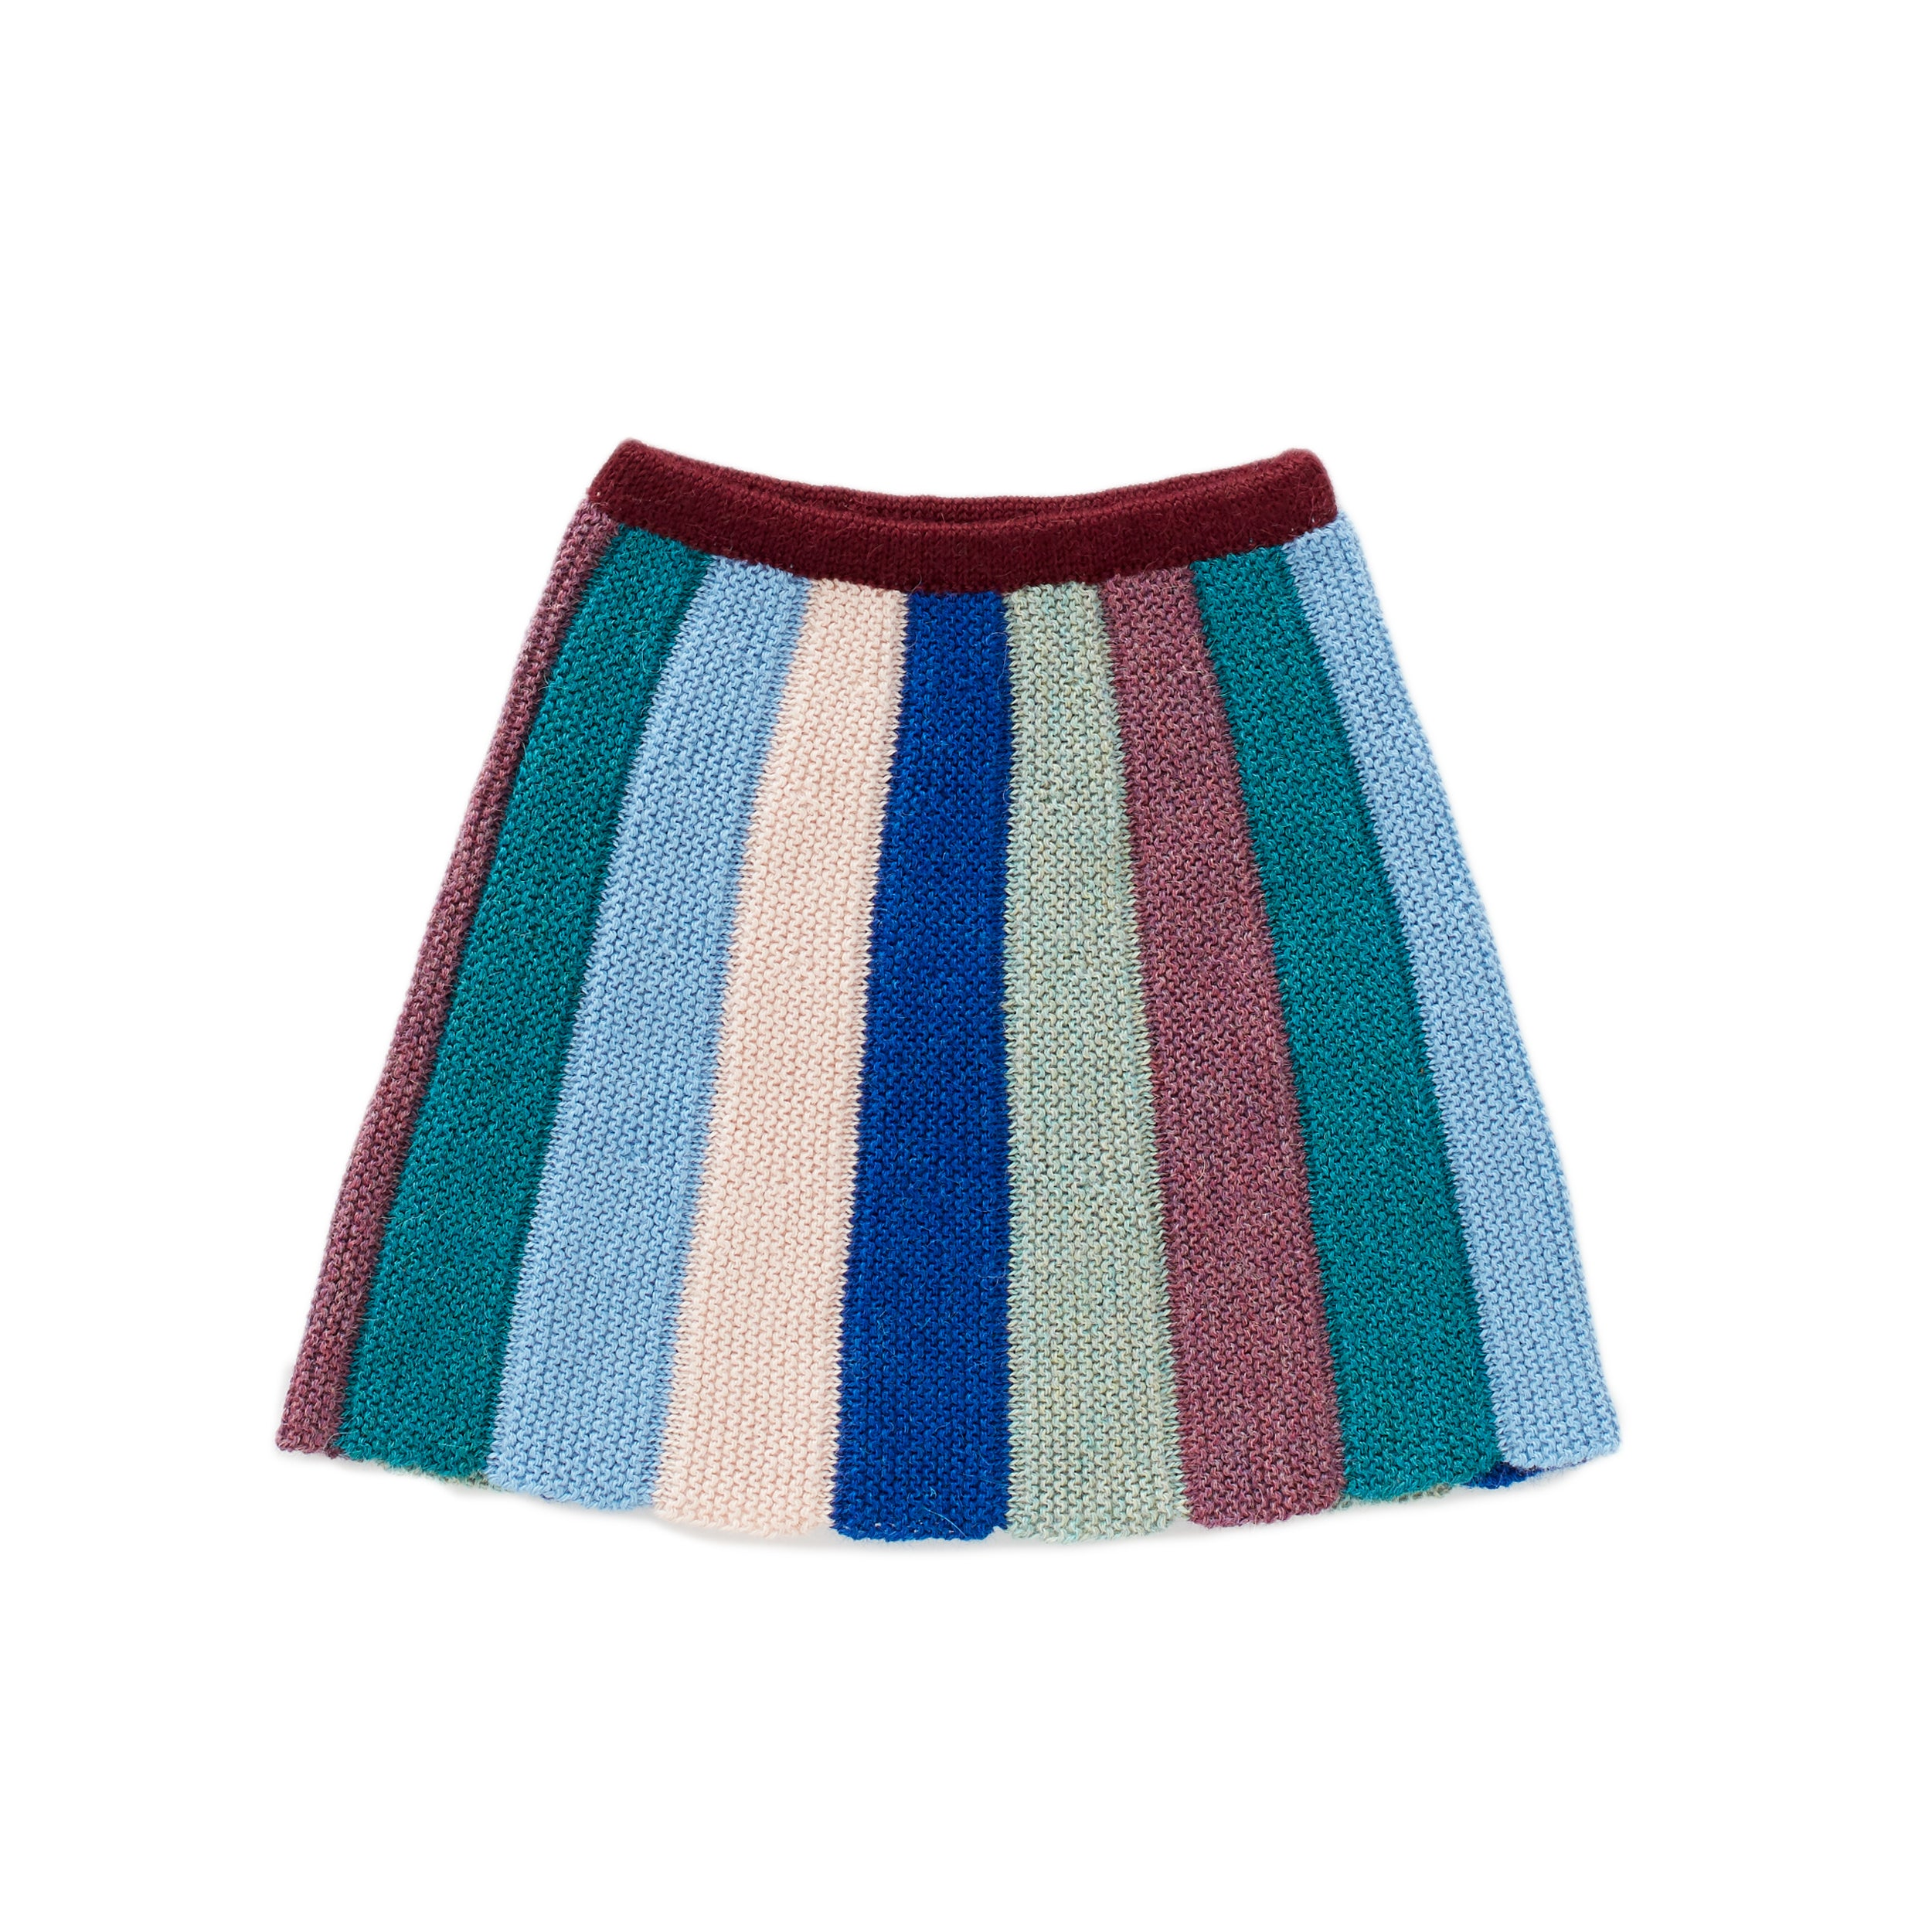 Oeuf Everyday Skirt - Teal